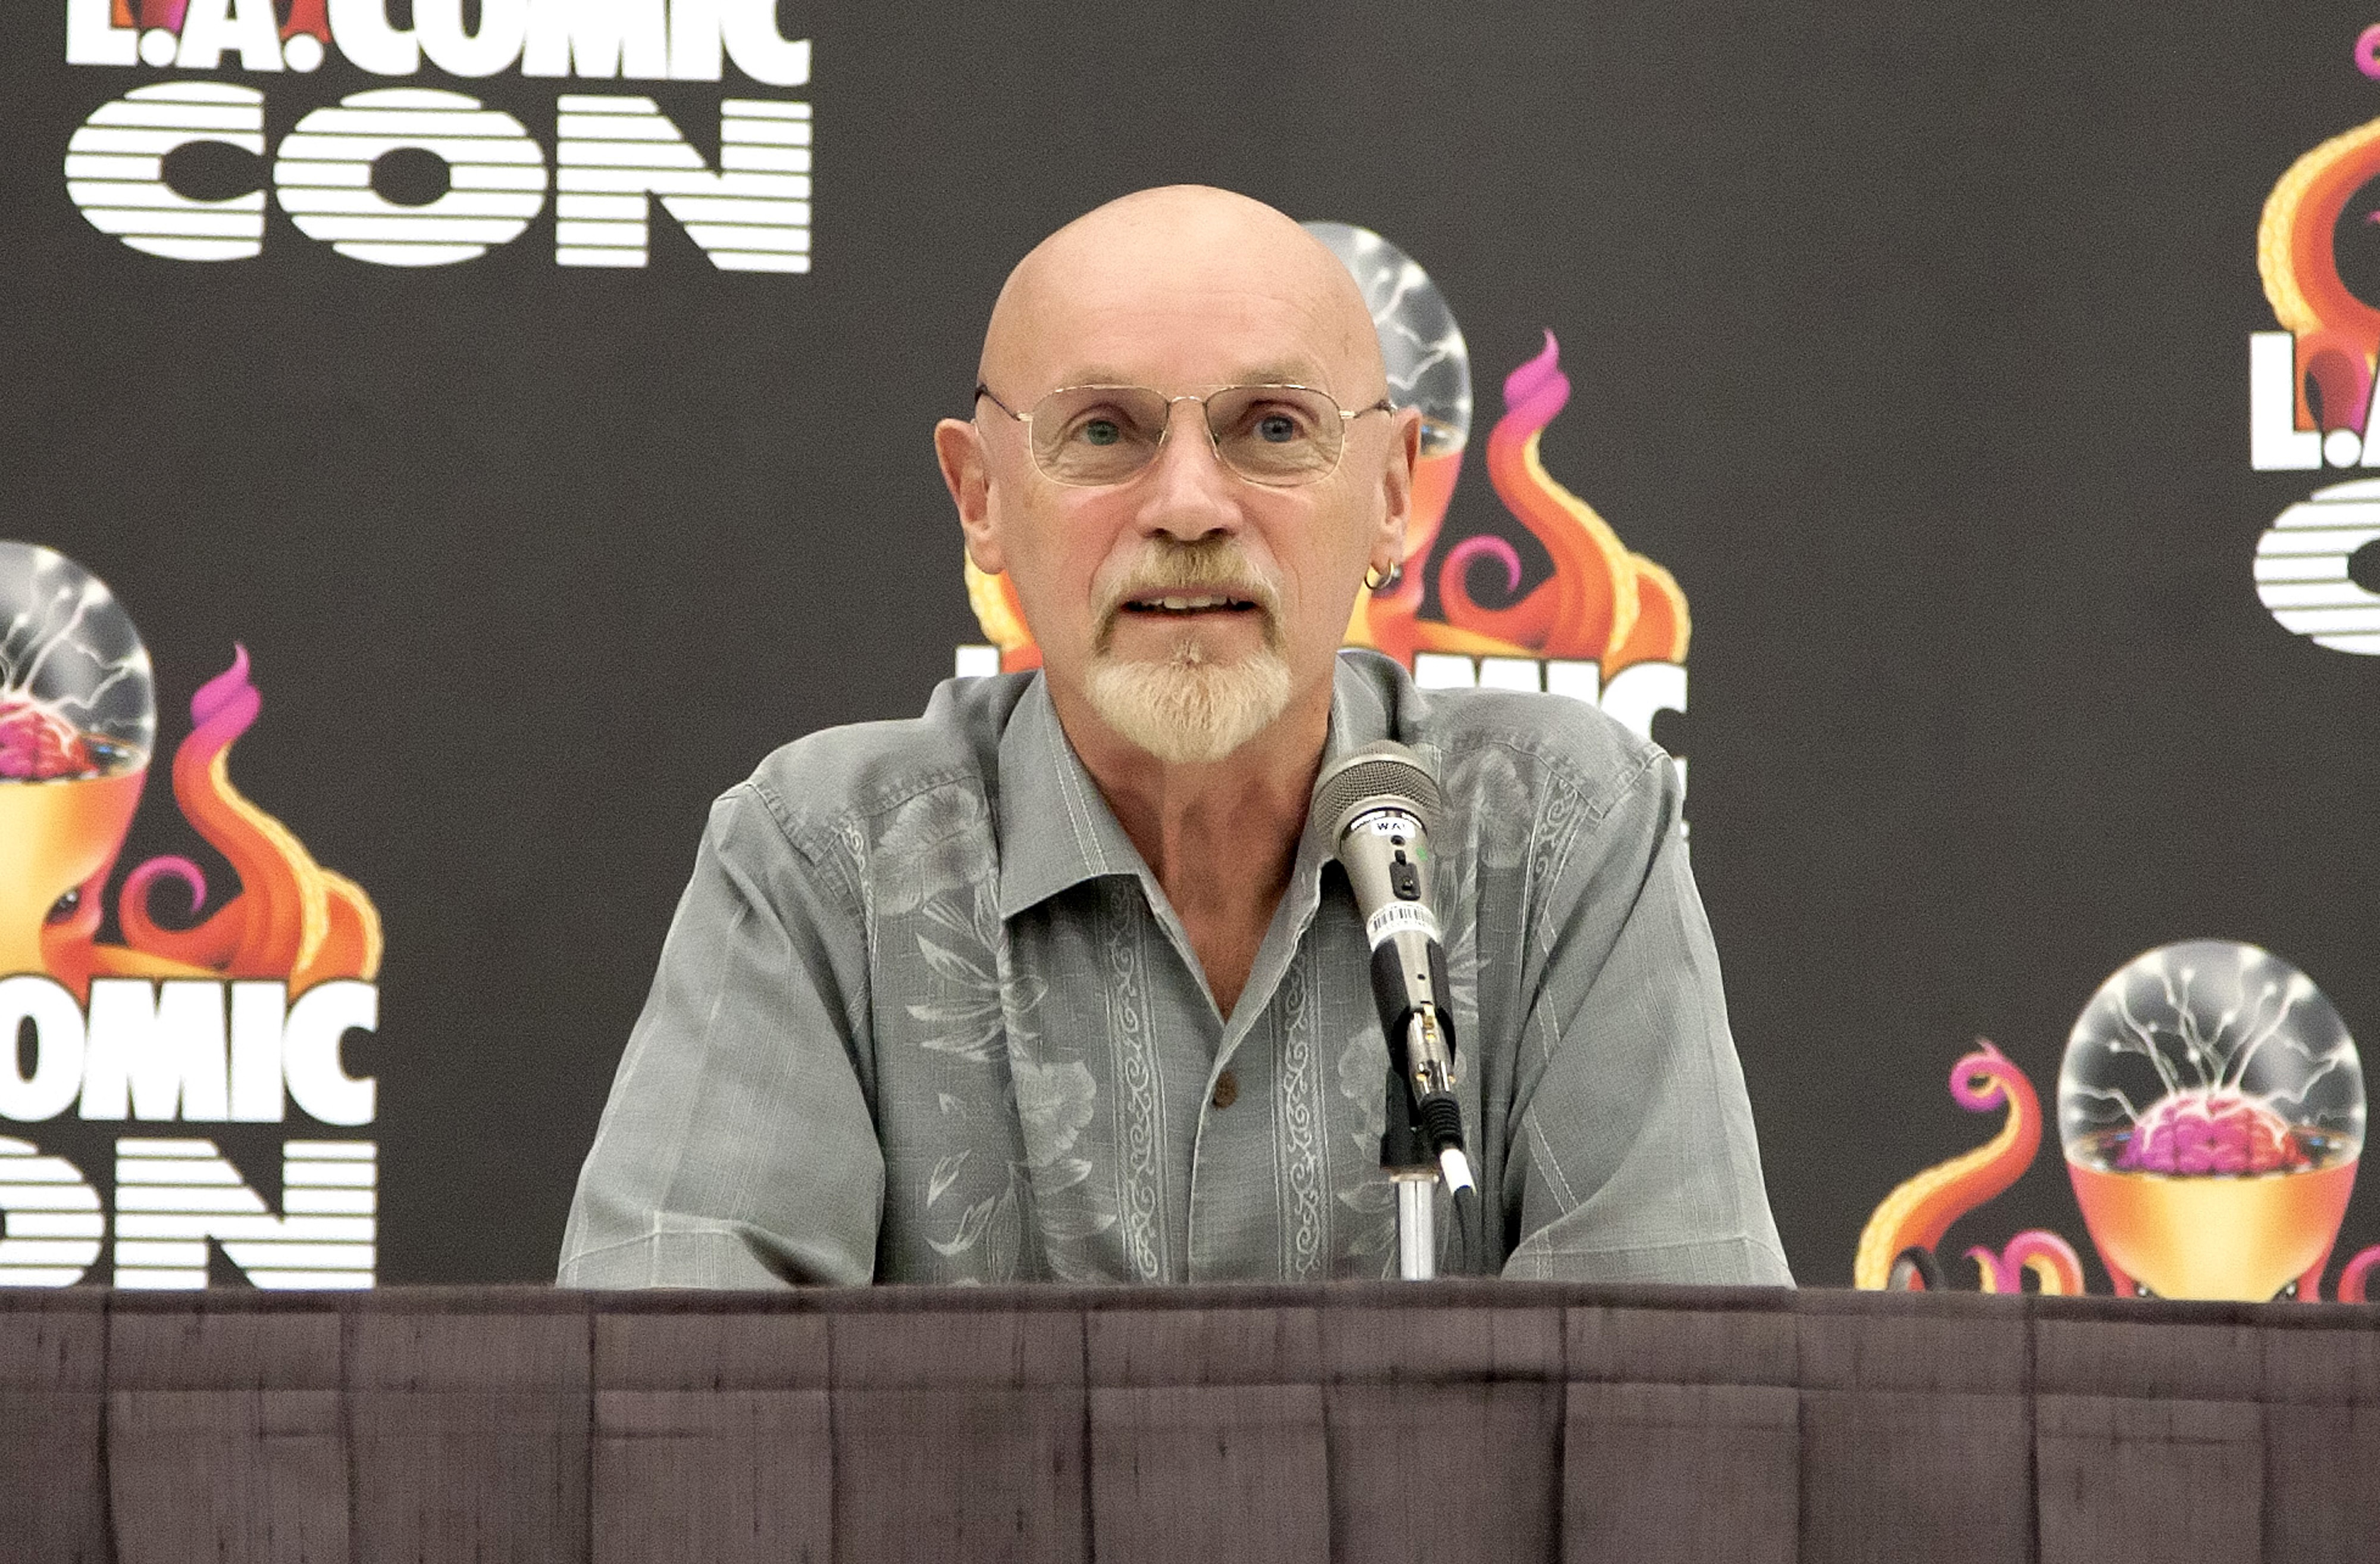 Jim Starlin, the creator of the Marvel character Thanos expressed how violated he felt after seeing Donald Trump portrayed as the character.